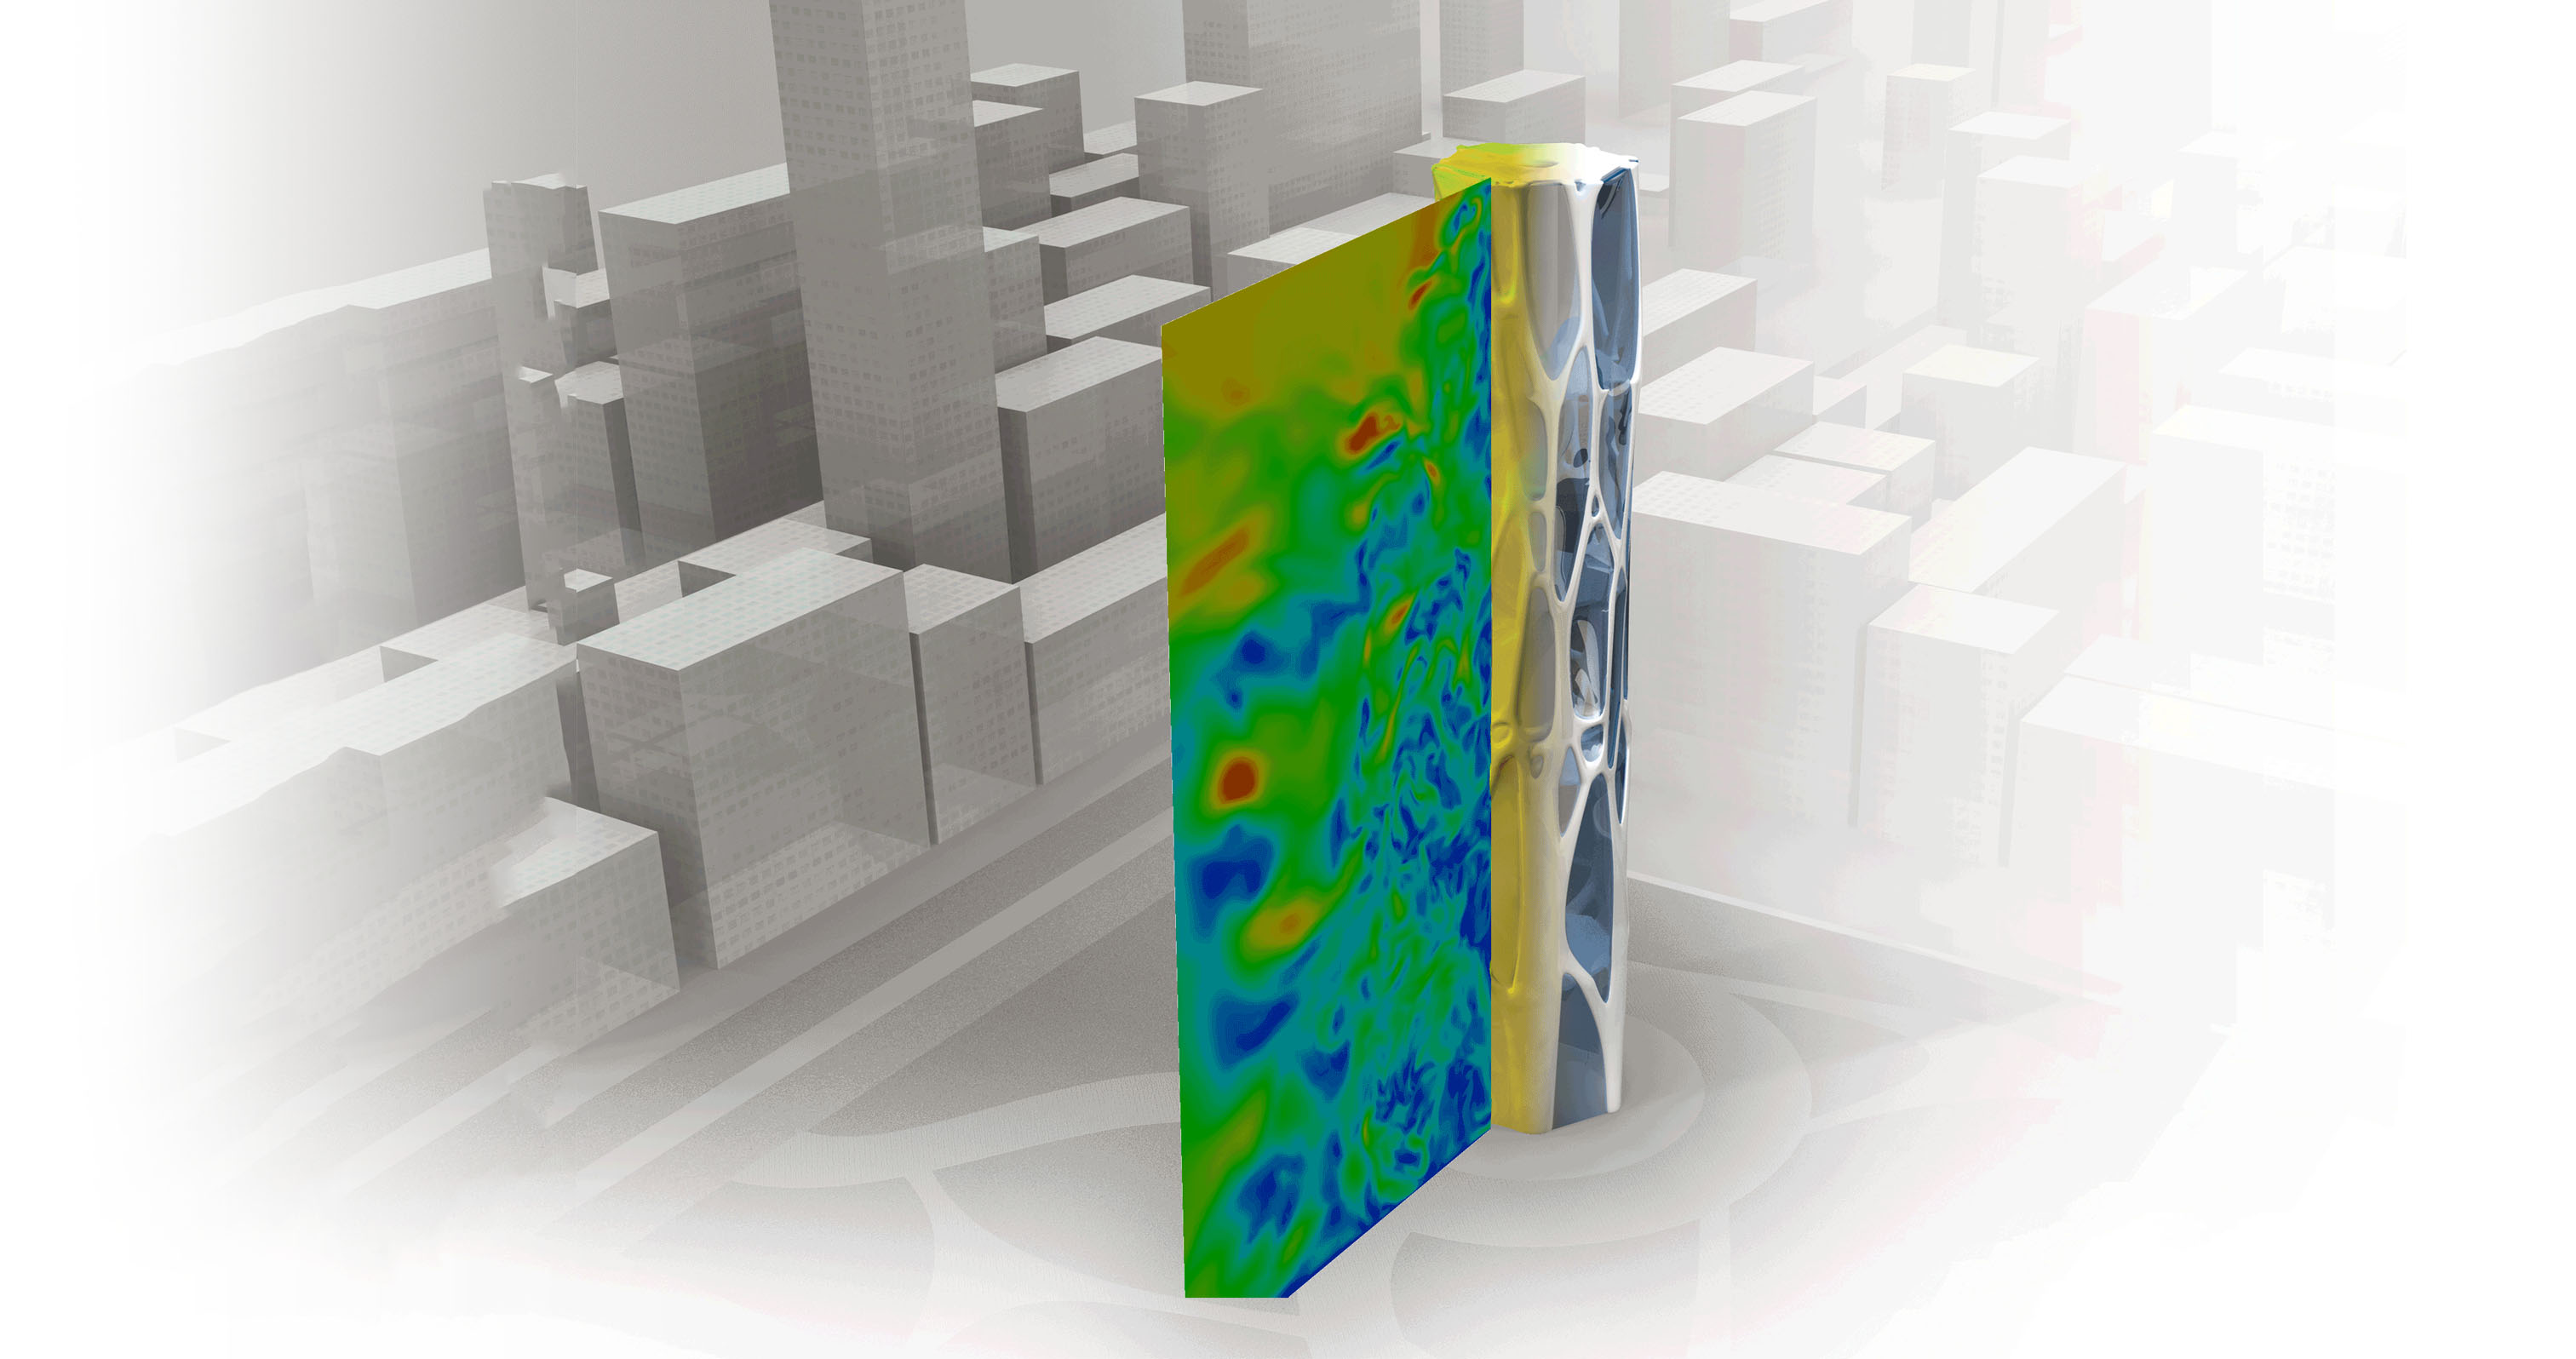 Simulation of aerodynamics of an architectural tower